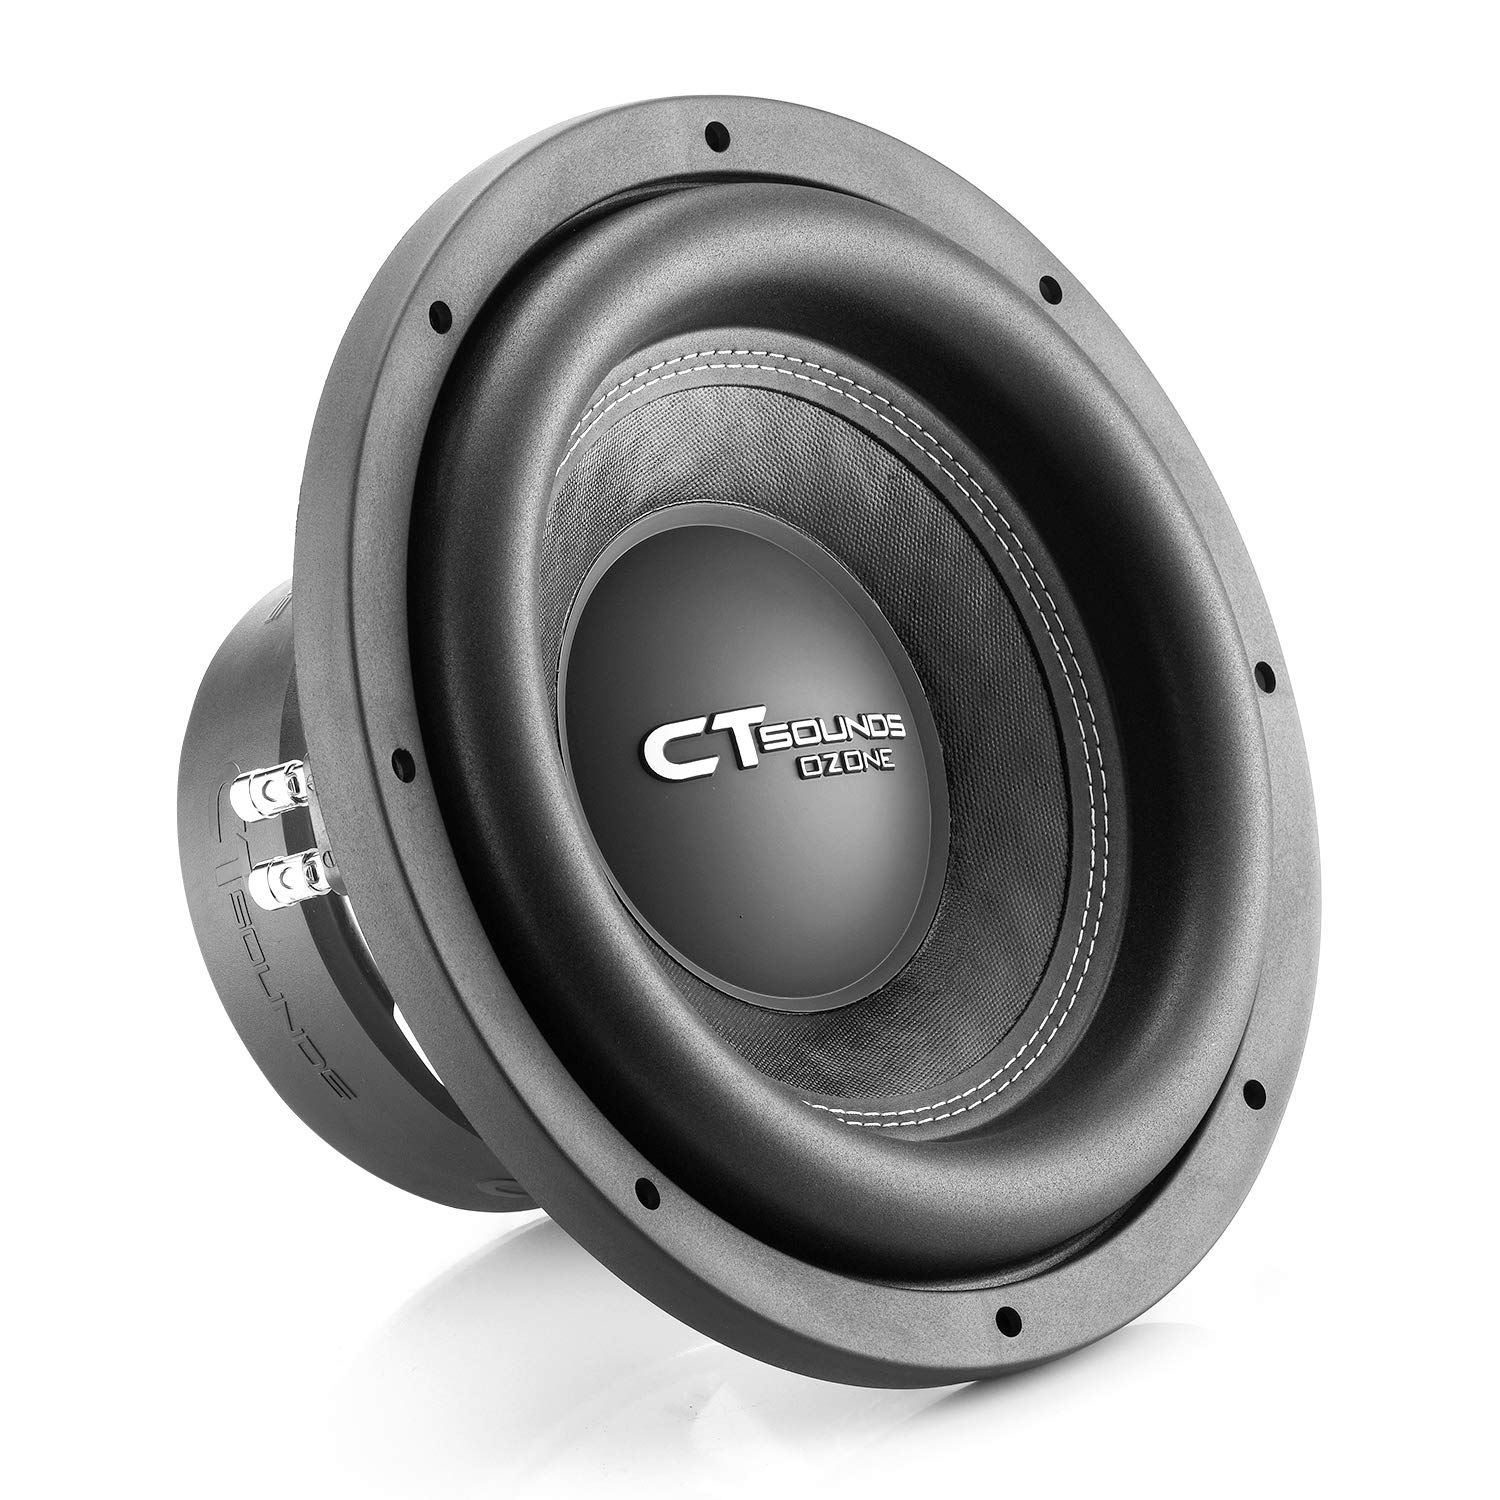 CT Sounds OZONE-12-D2 1600 Watt Max Power Dual 2 Ohm 12in Car Subwoofer